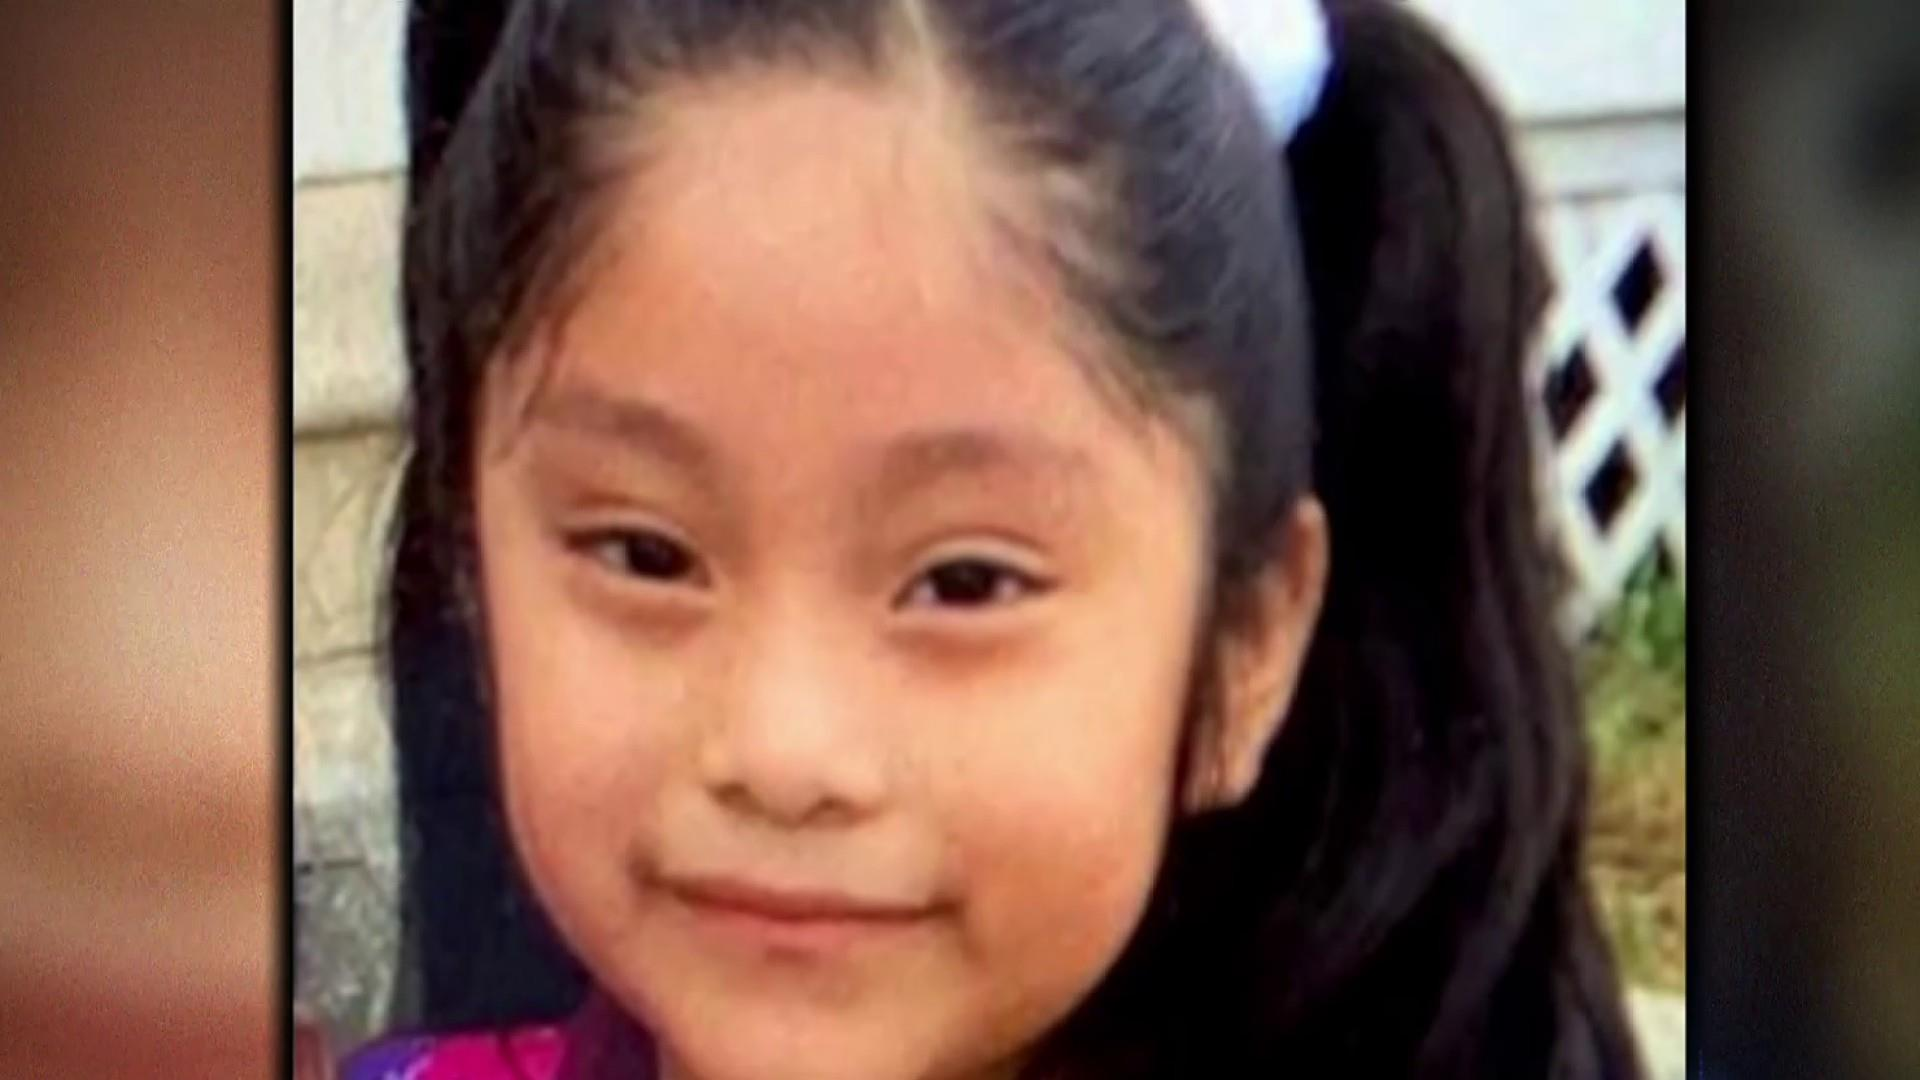 New Jersey 5-year-old still missing, last seen four days ago